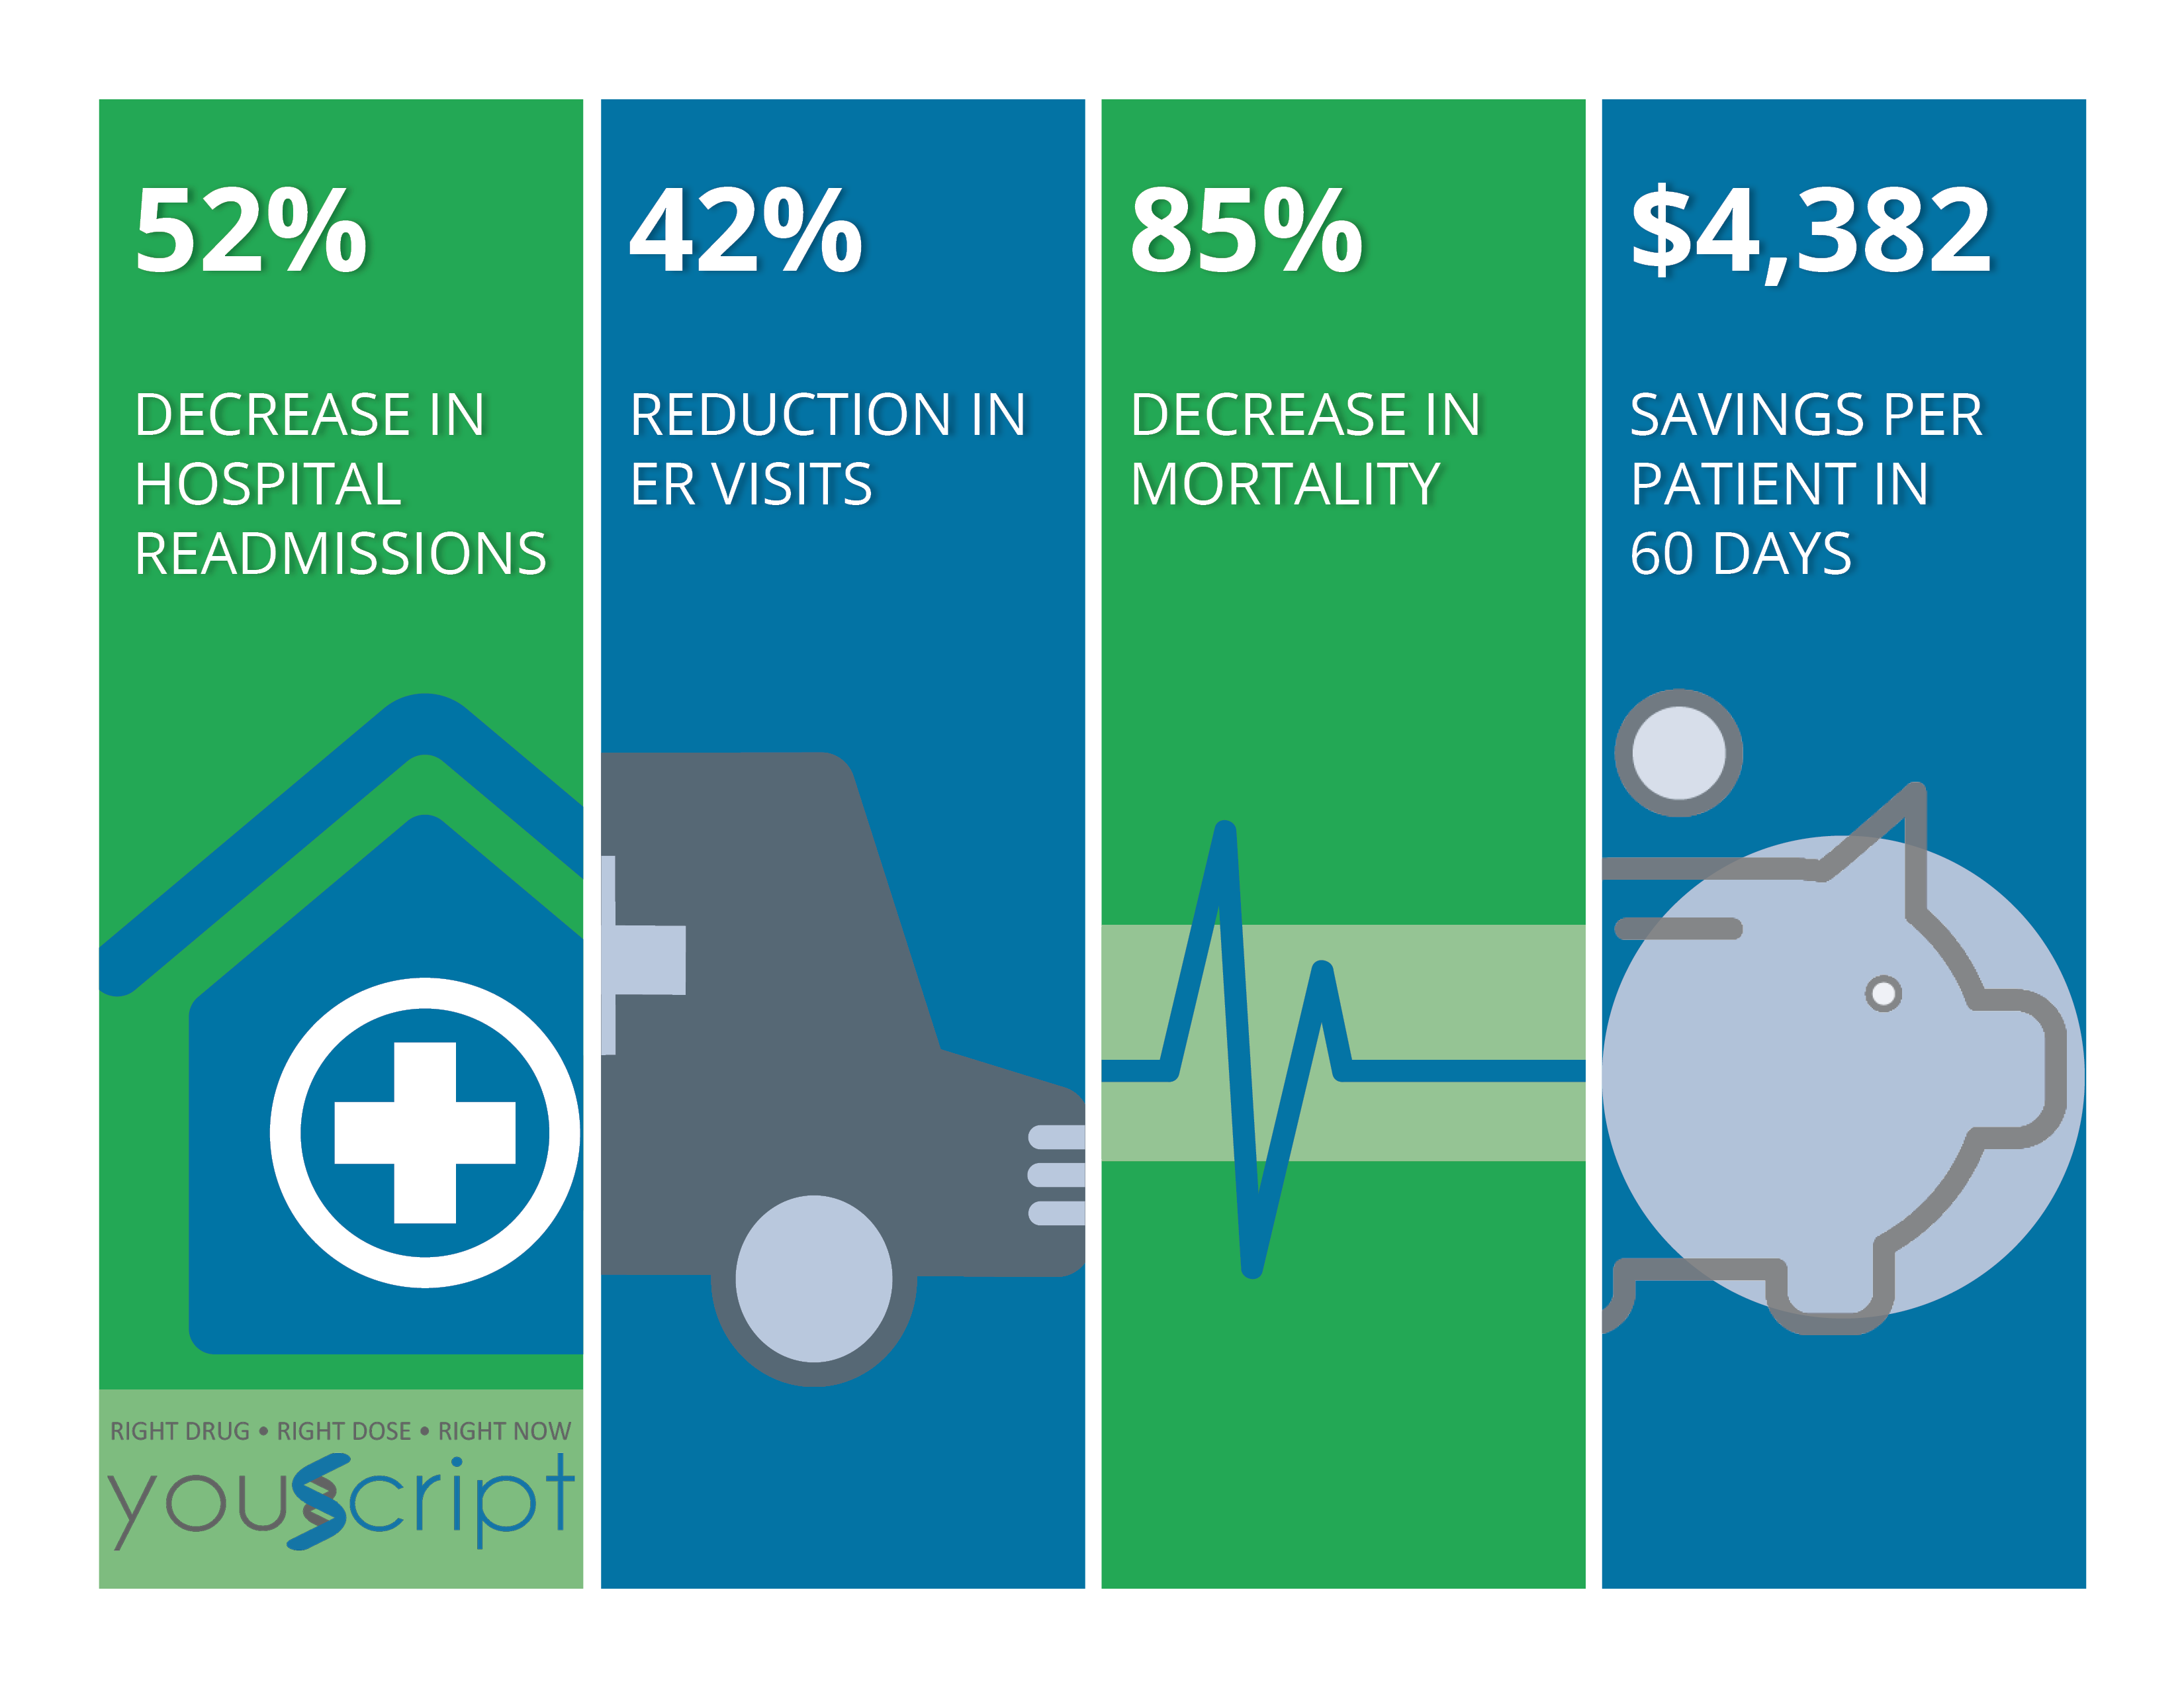 Reductions in readmissions, ER visits, costs, and death